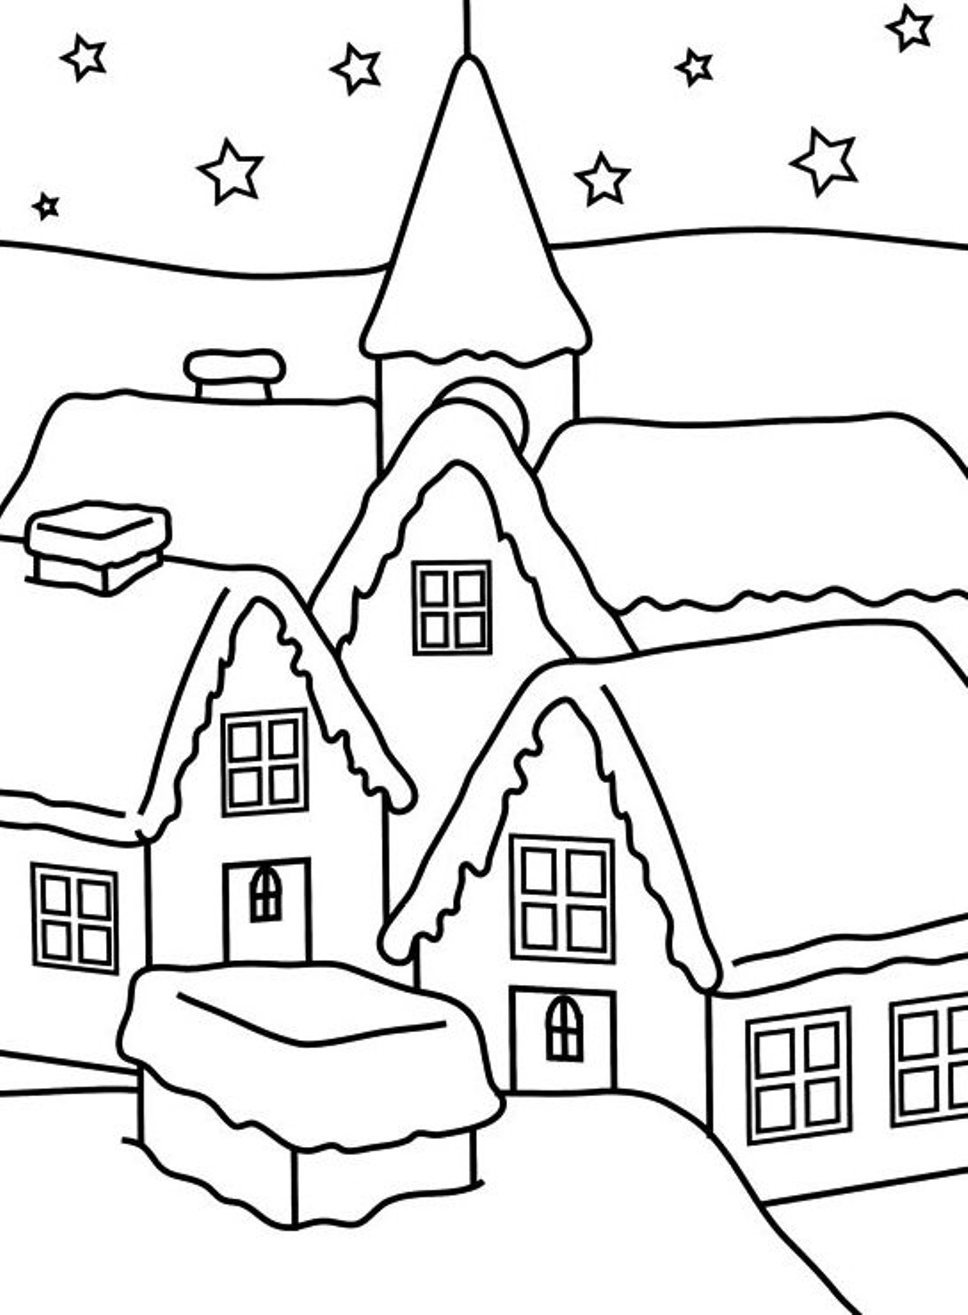 968x1315 House Of Winter Coloring Pages For Kids Christmas Coloring Pages